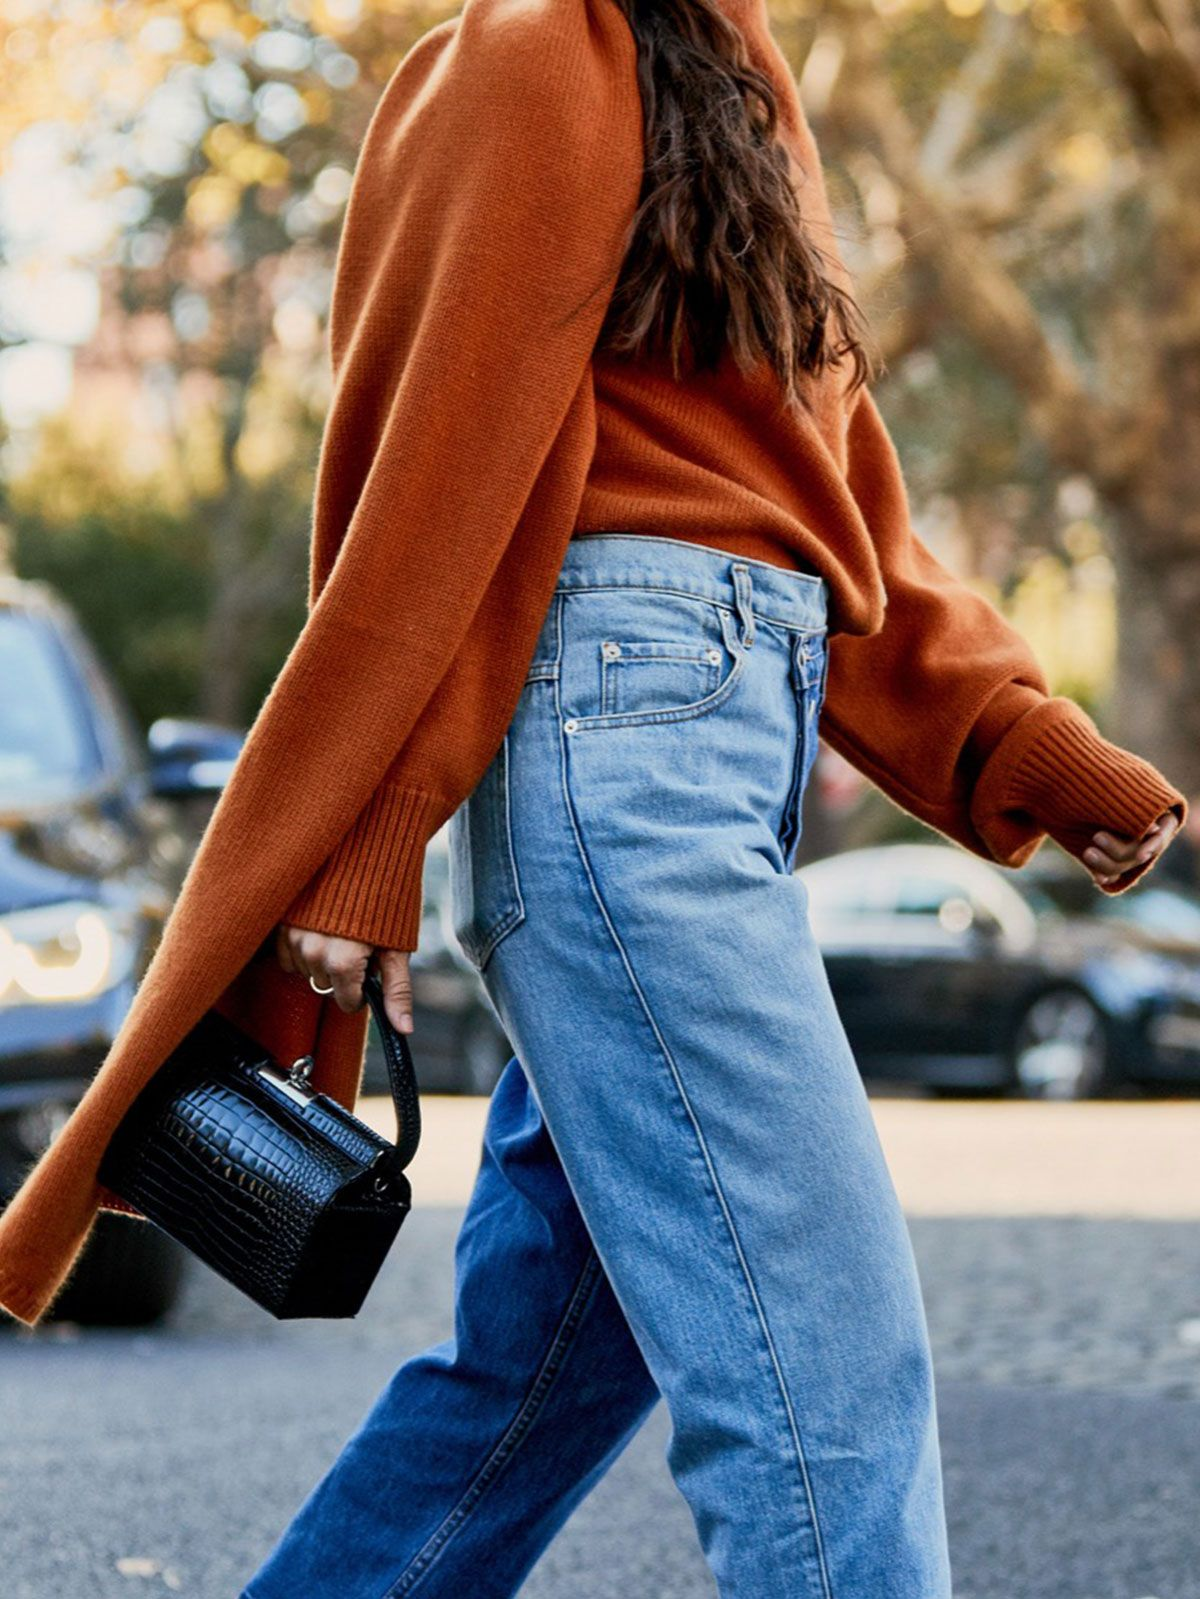 13 Fashion Items We're Buying